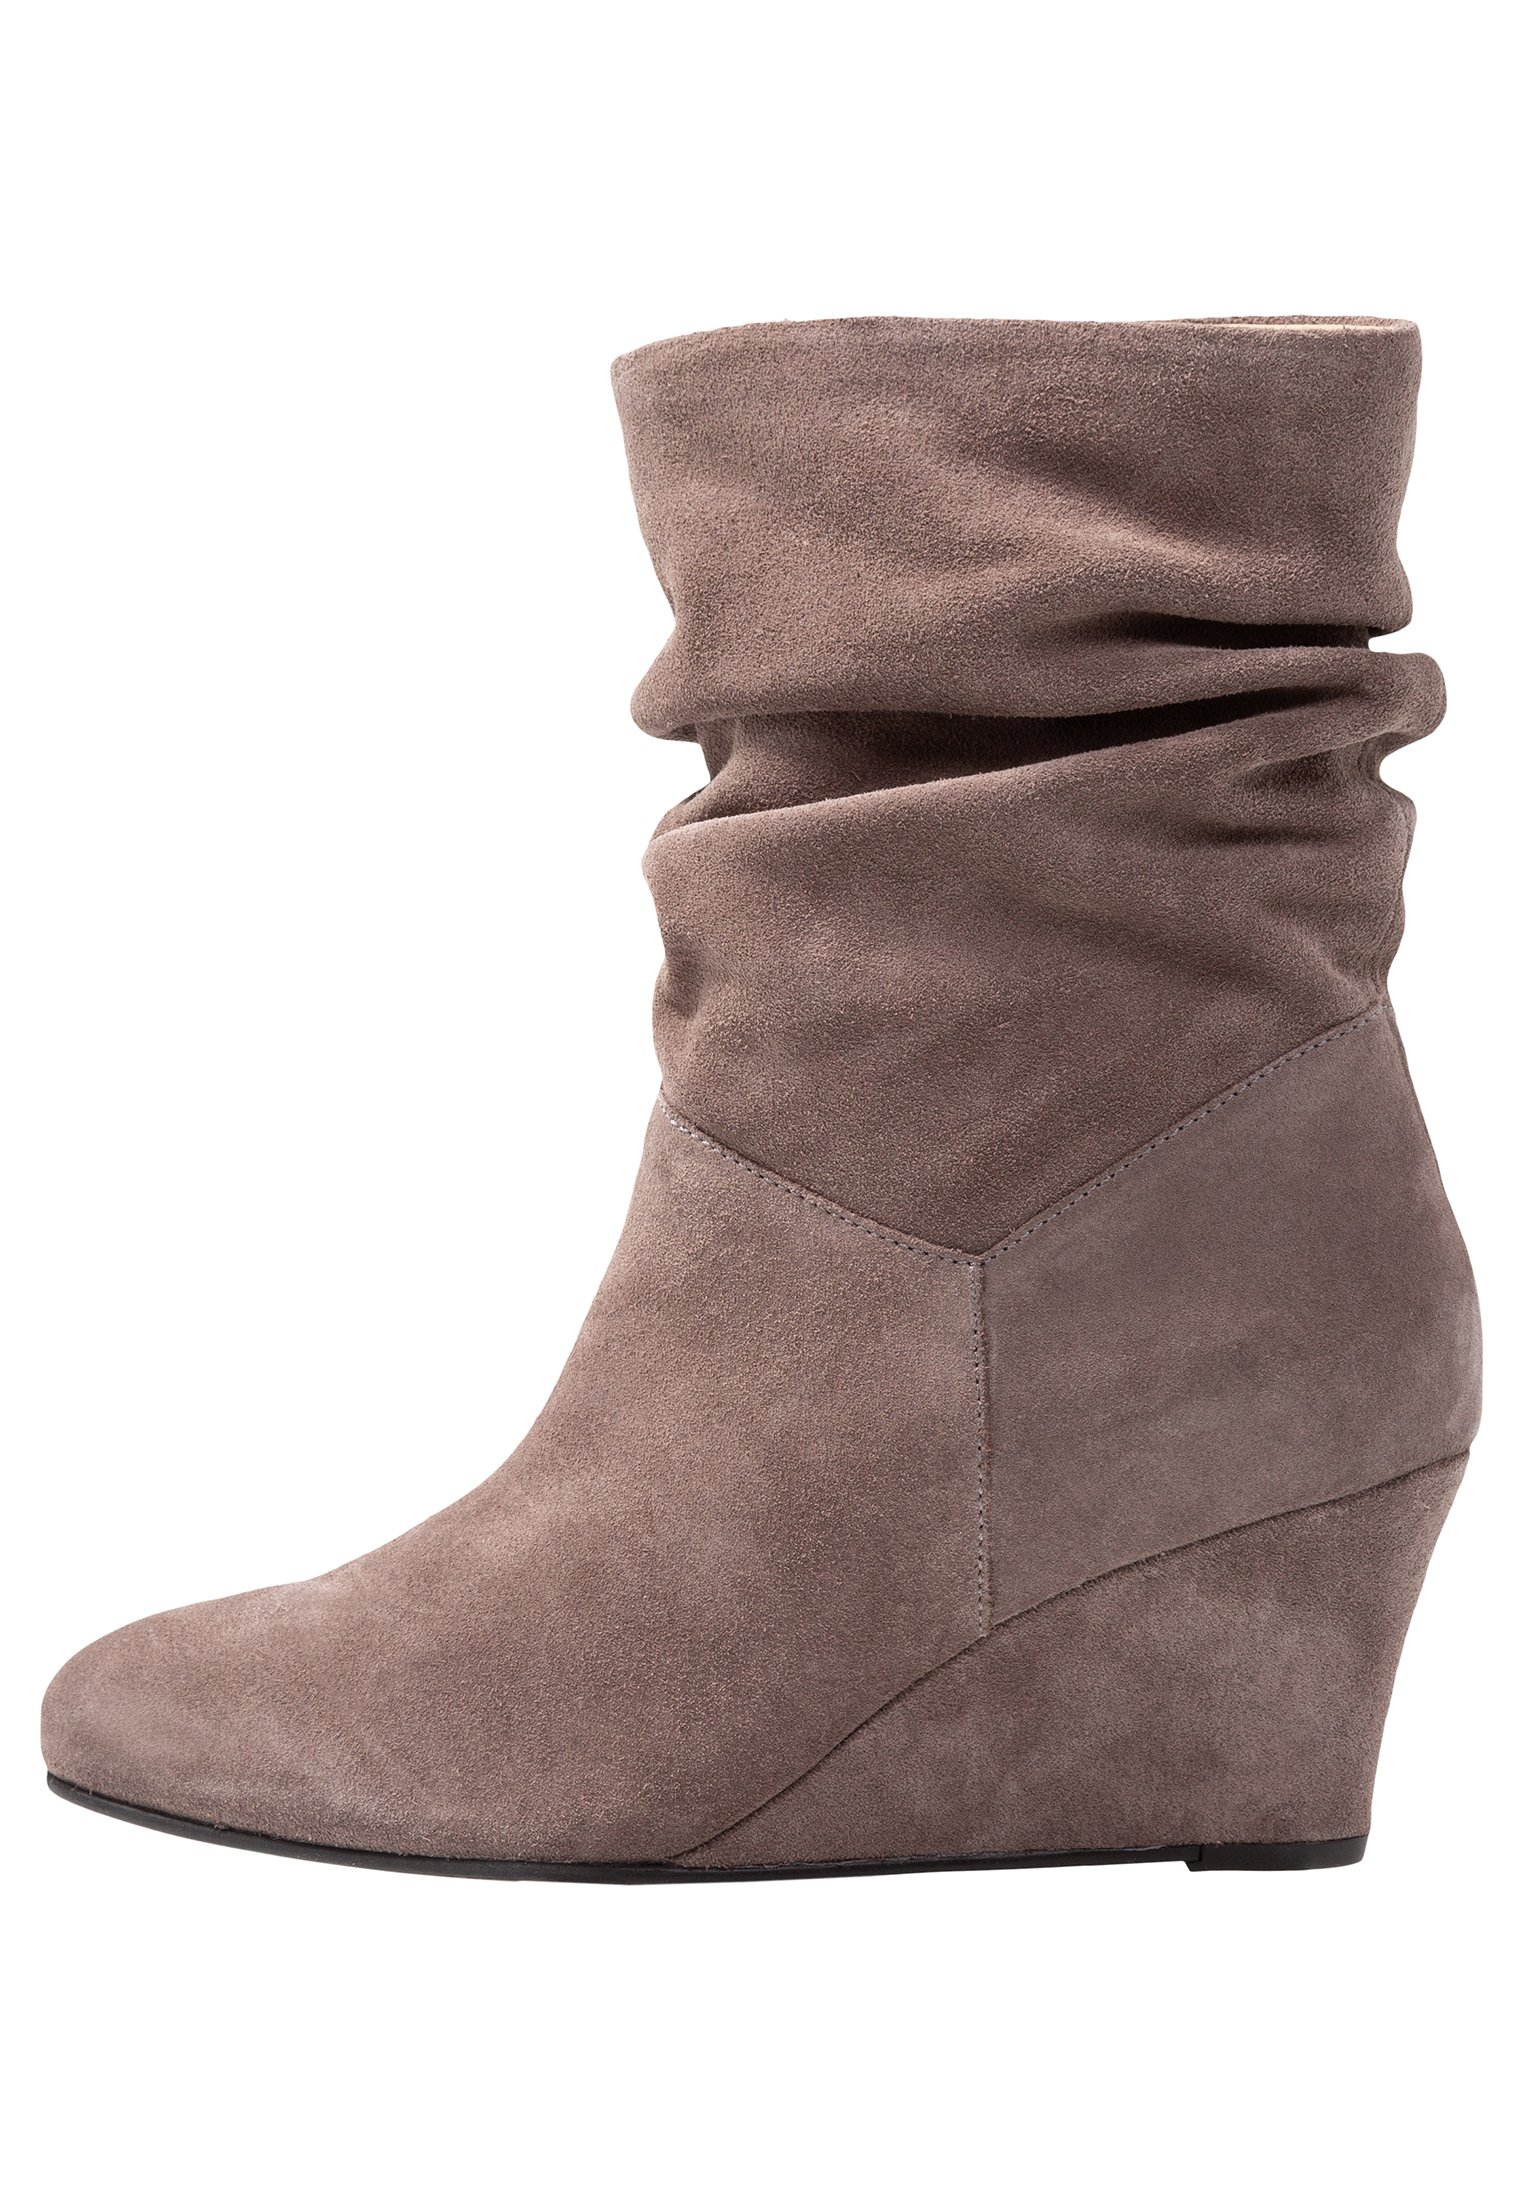 mint&berry Boots taupe Zalando.co.uk